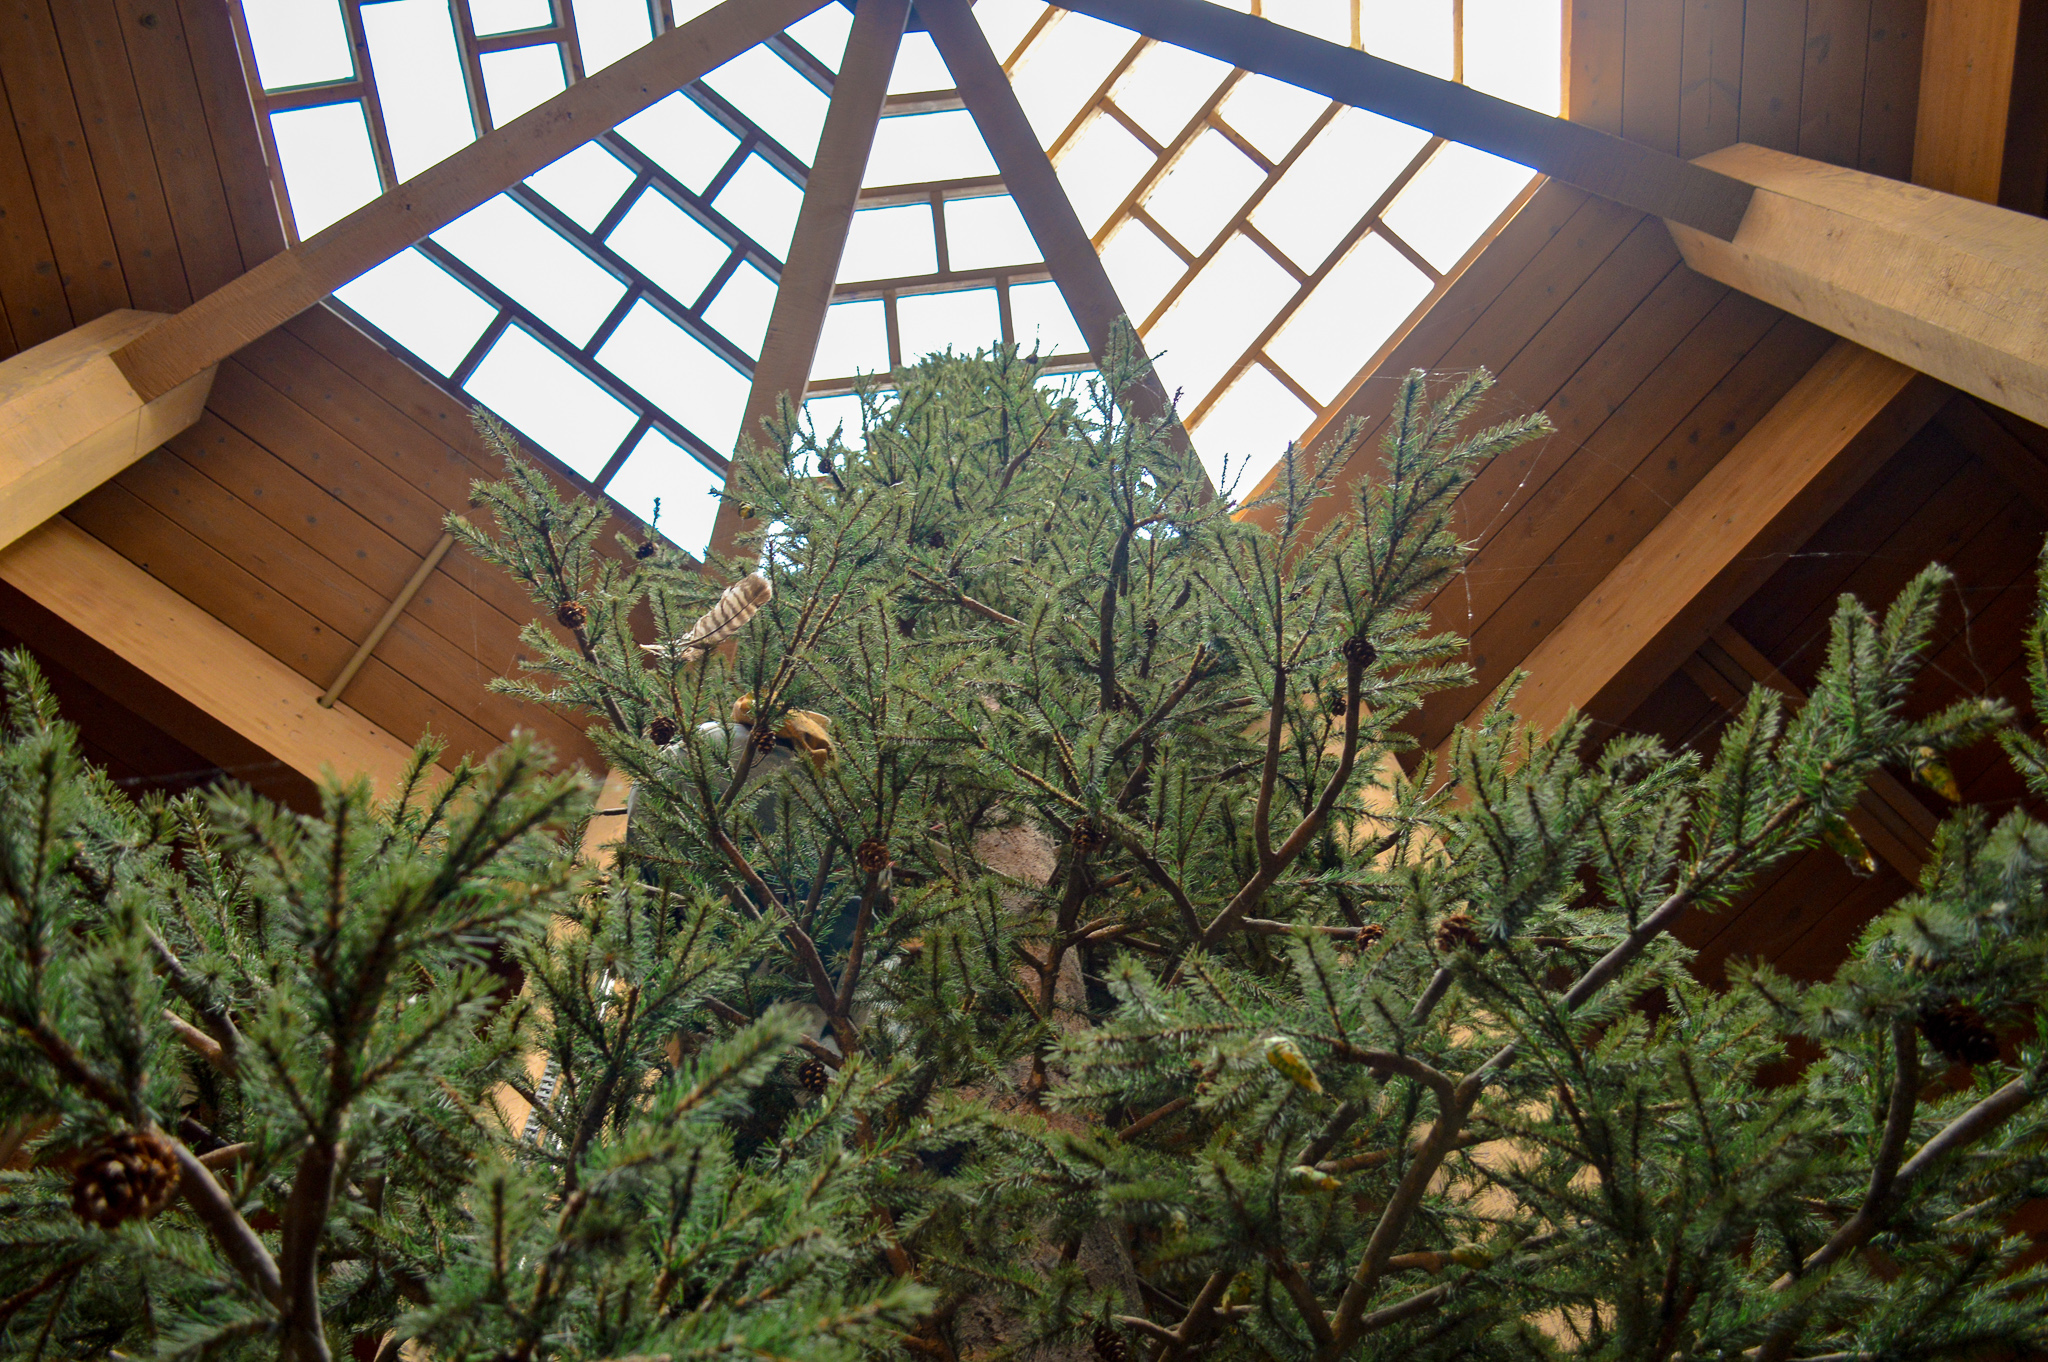 Looking upward at a tree below an atrium window